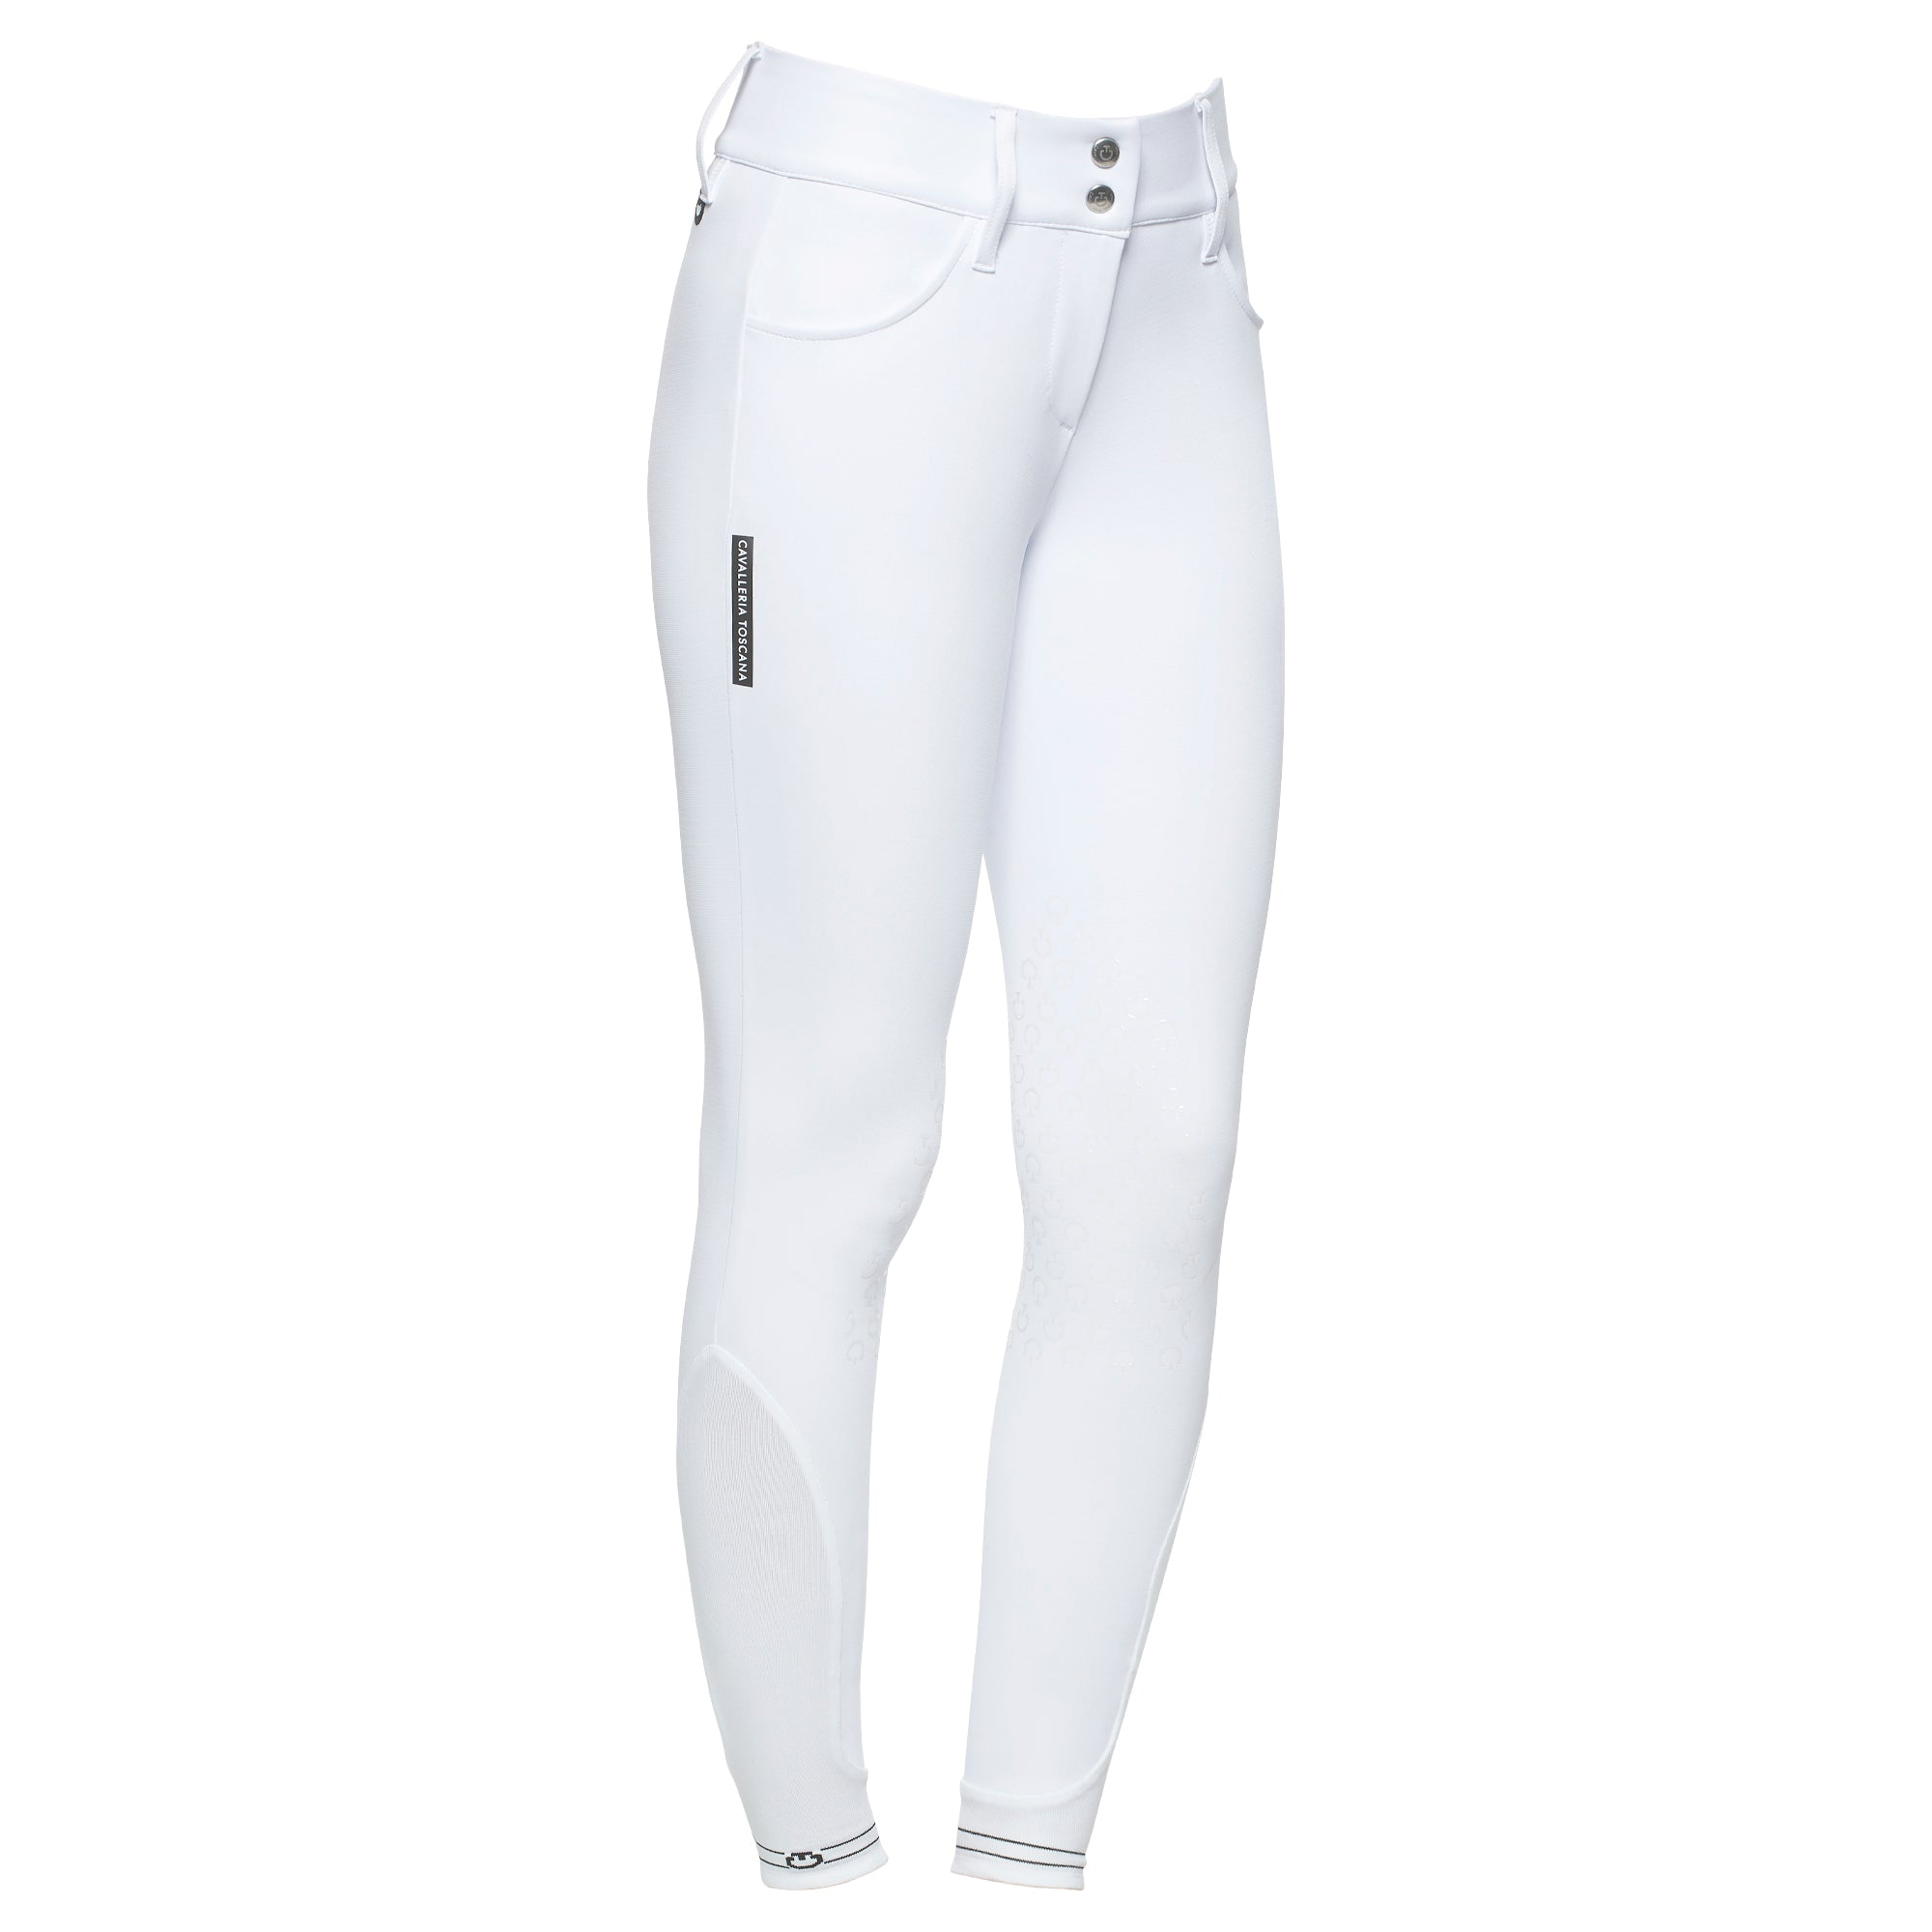 Cavalleria Toscana American Breeches W/Perforated Logo Tape